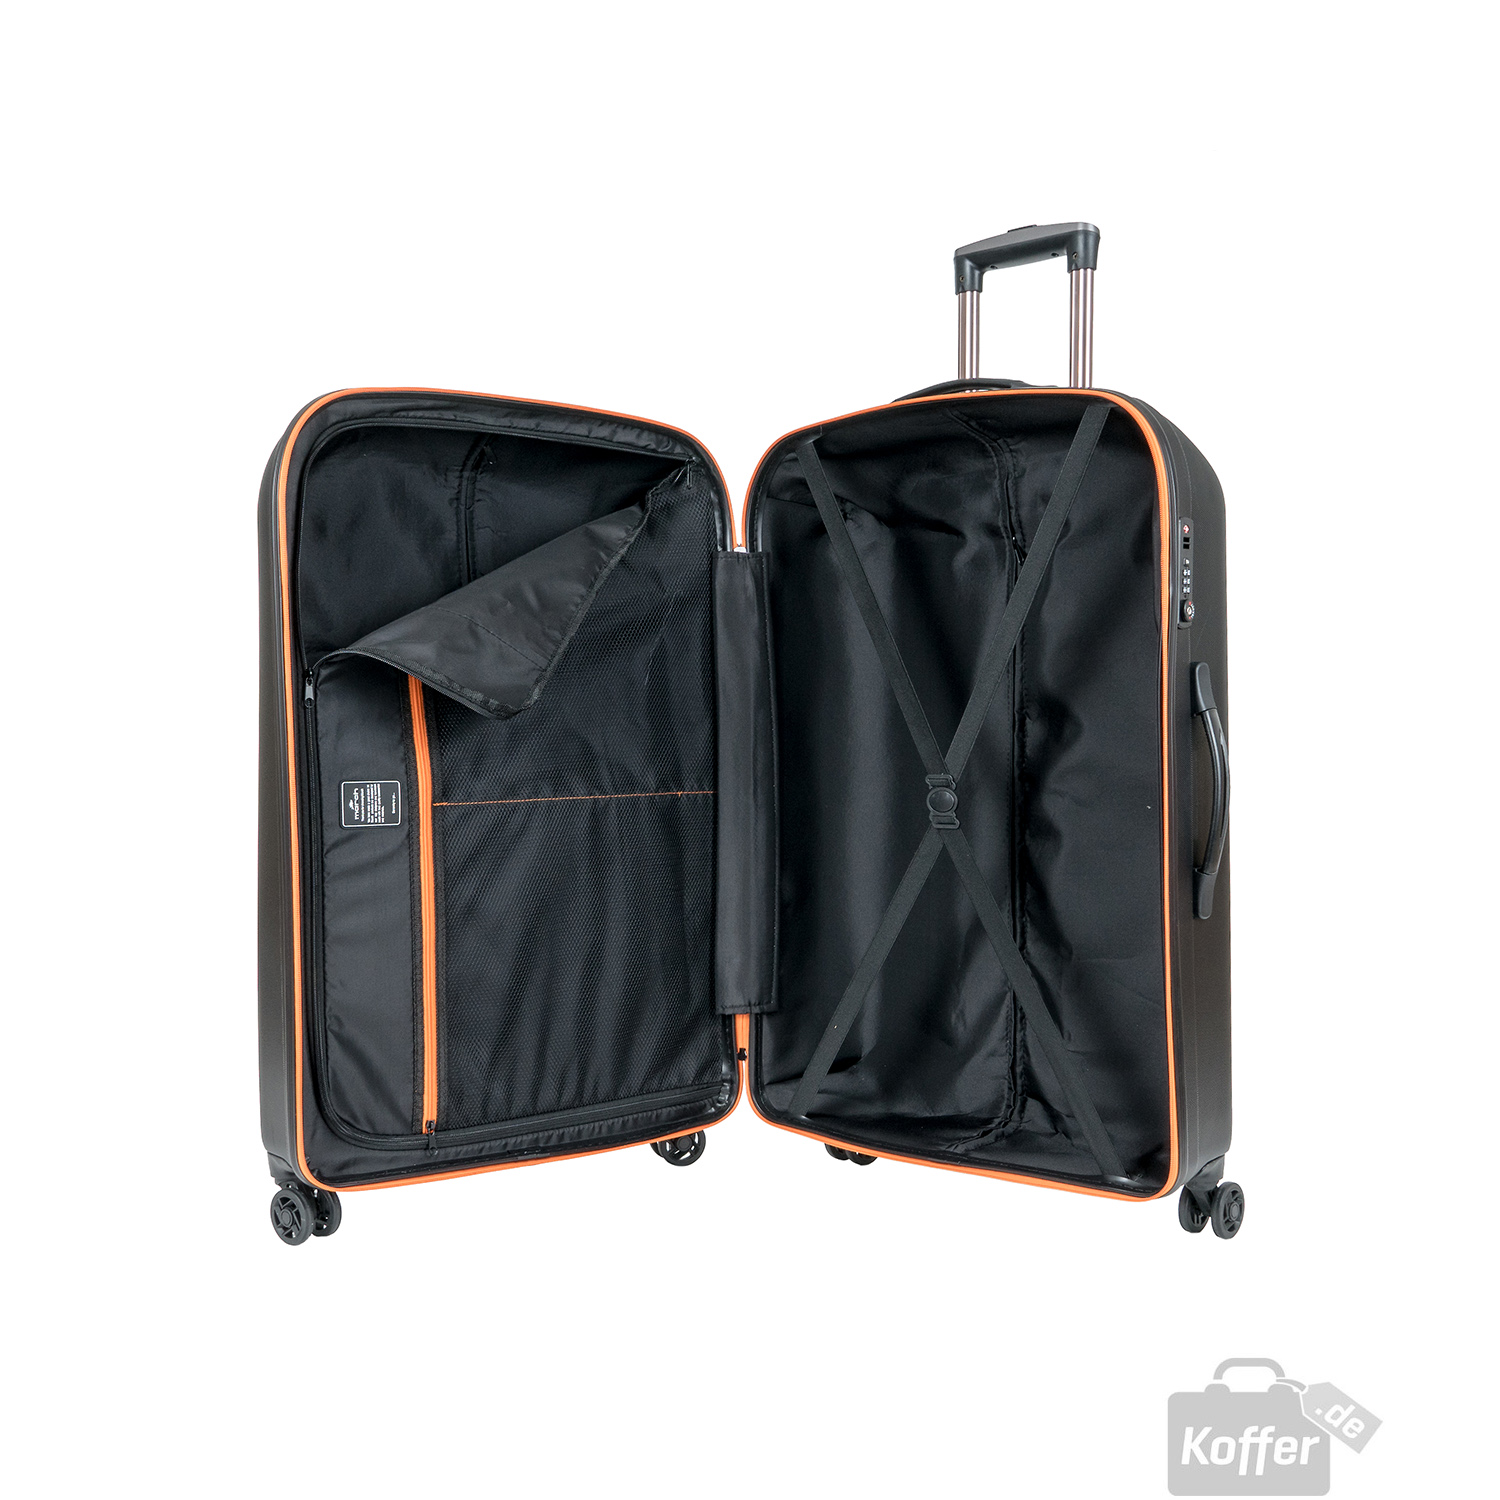 march rocky trolley l 4 rollen black orange zipper jetzt auf kaufen. Black Bedroom Furniture Sets. Home Design Ideas